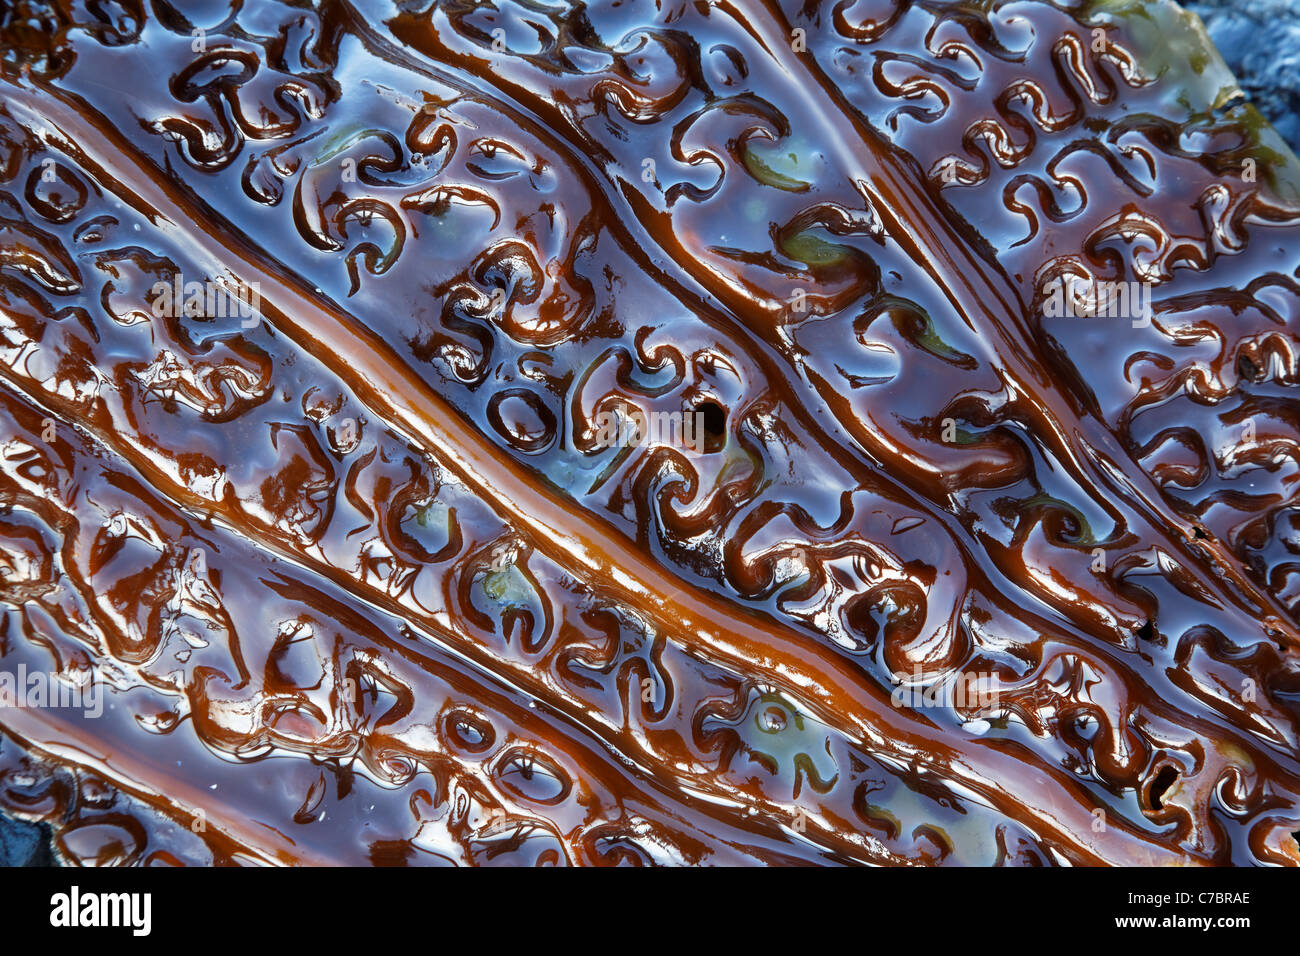 Close-up of giant kelp frond, Salt Creek Recreation Area, Clallam County, Washington, USA - Stock Image